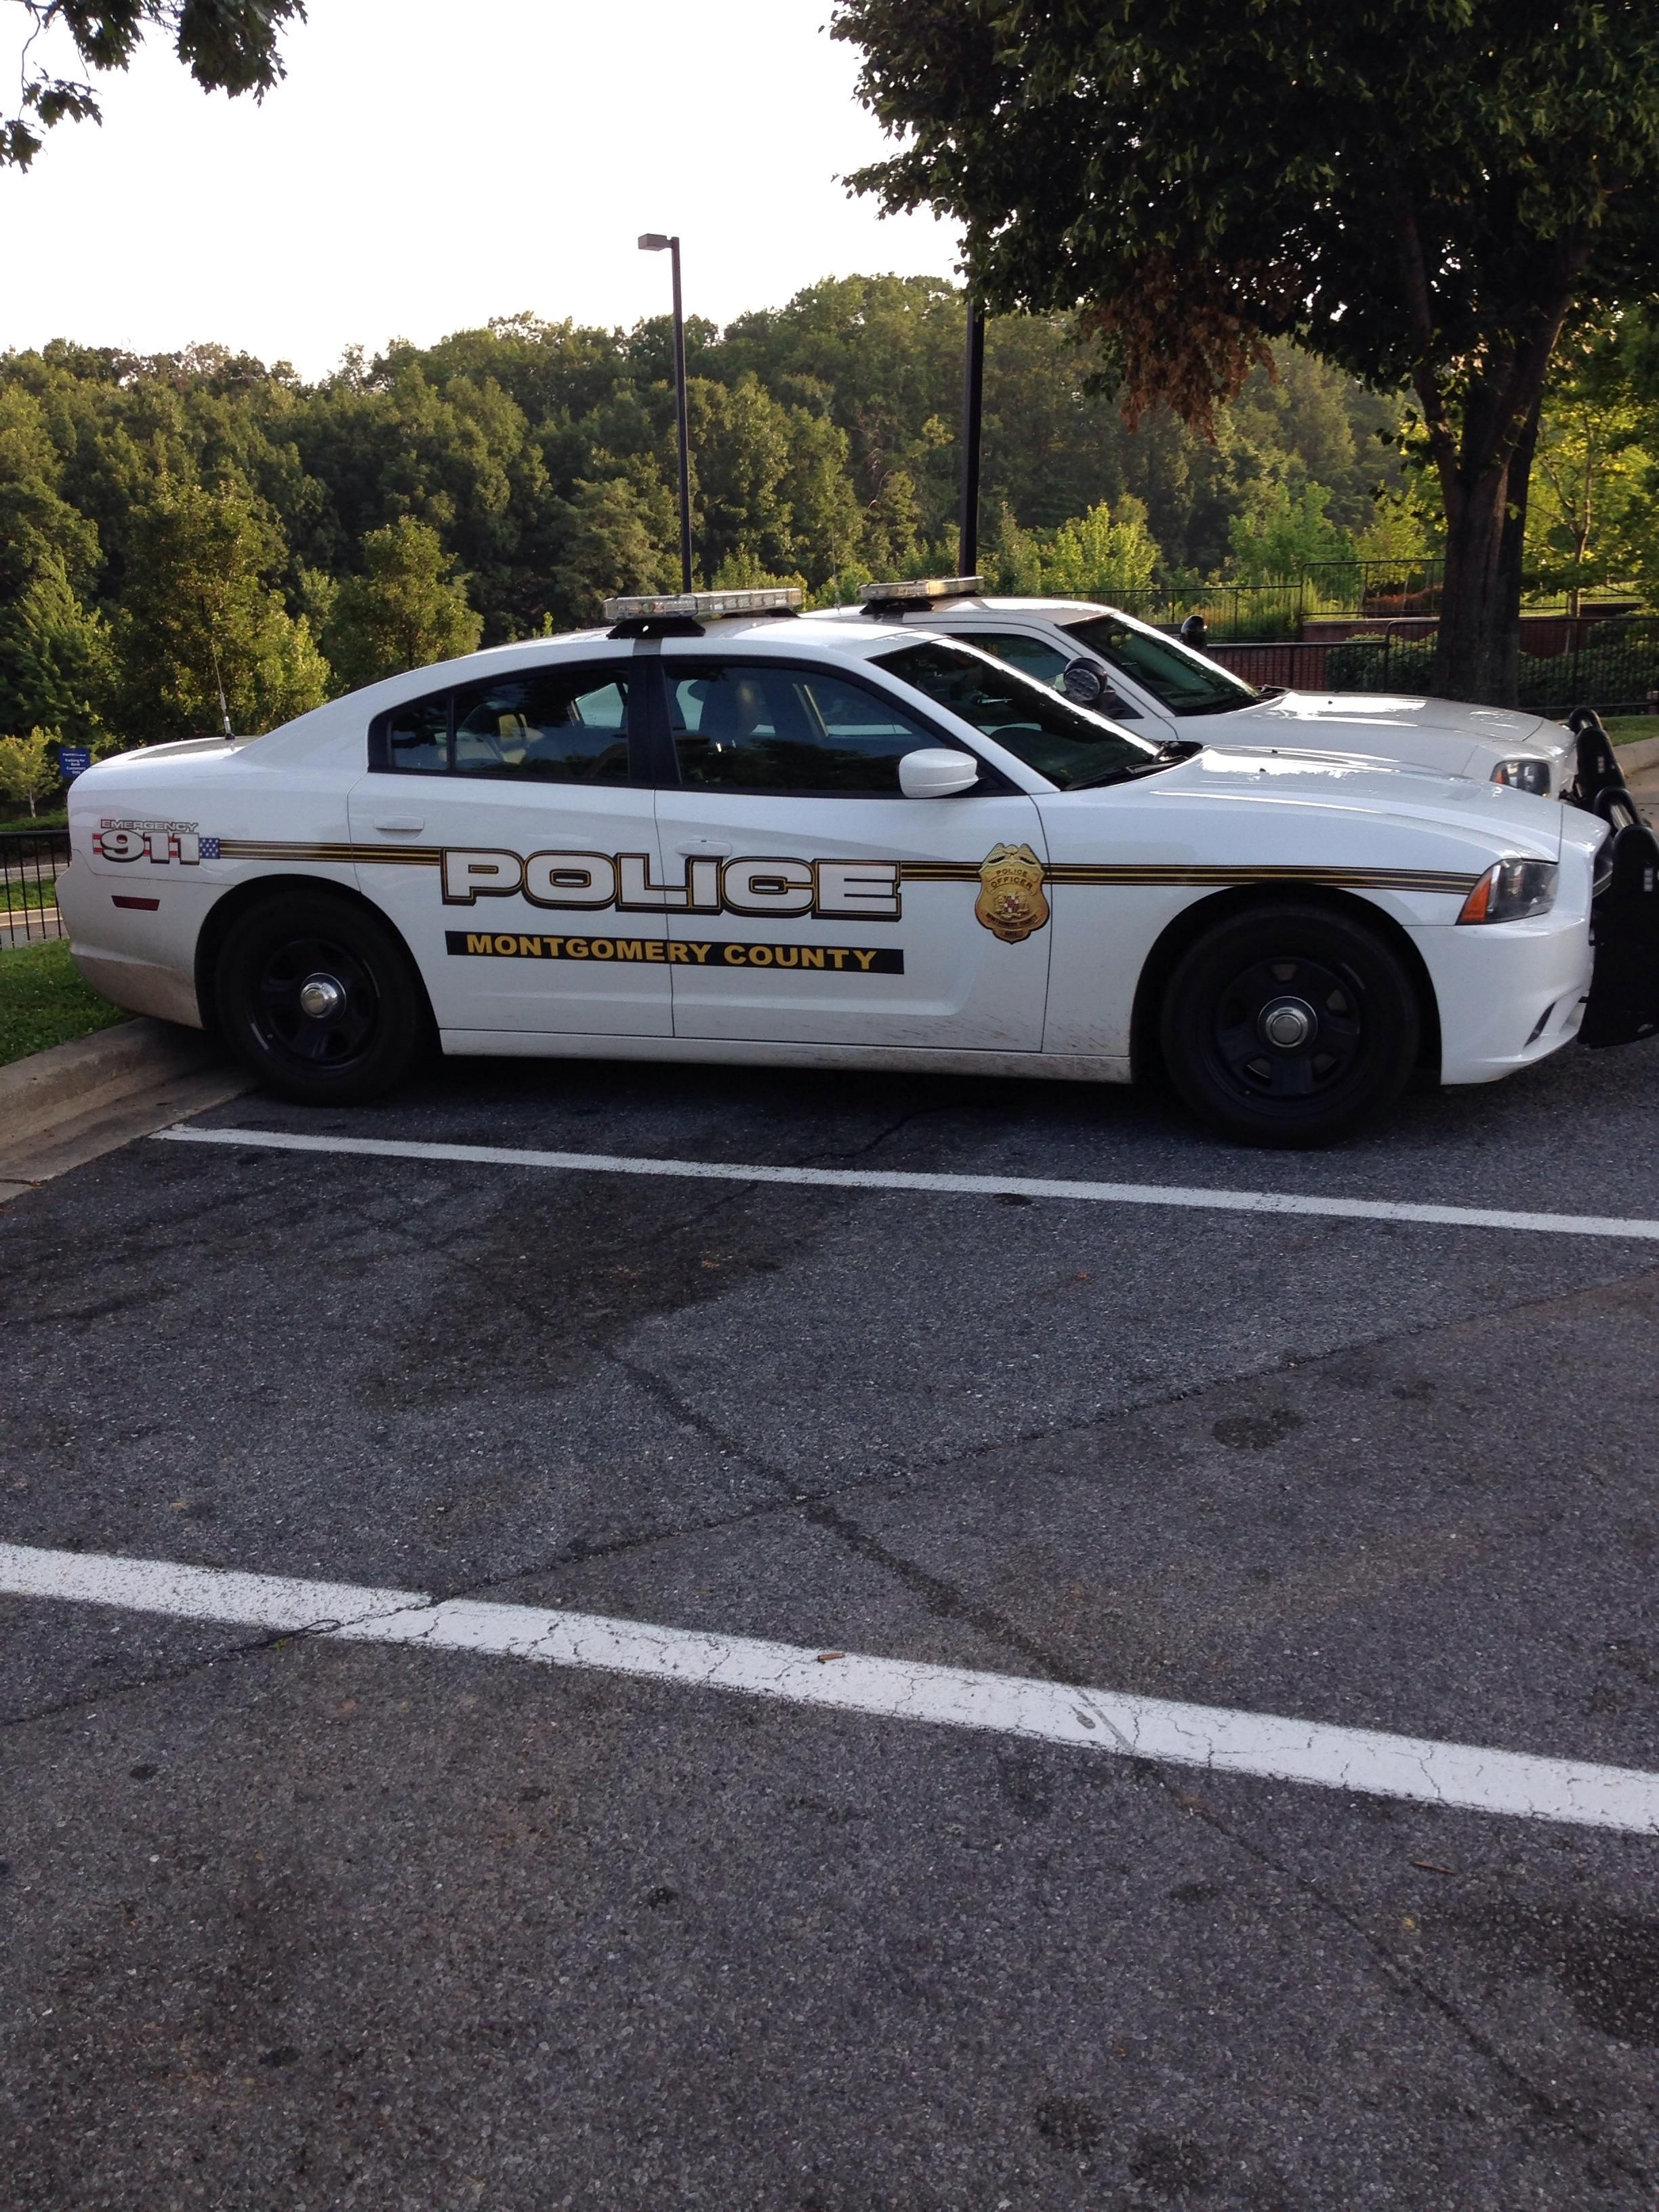 Montgomery County Police Dodge Charger Maryland Police Cars Police Emergency Vehicles